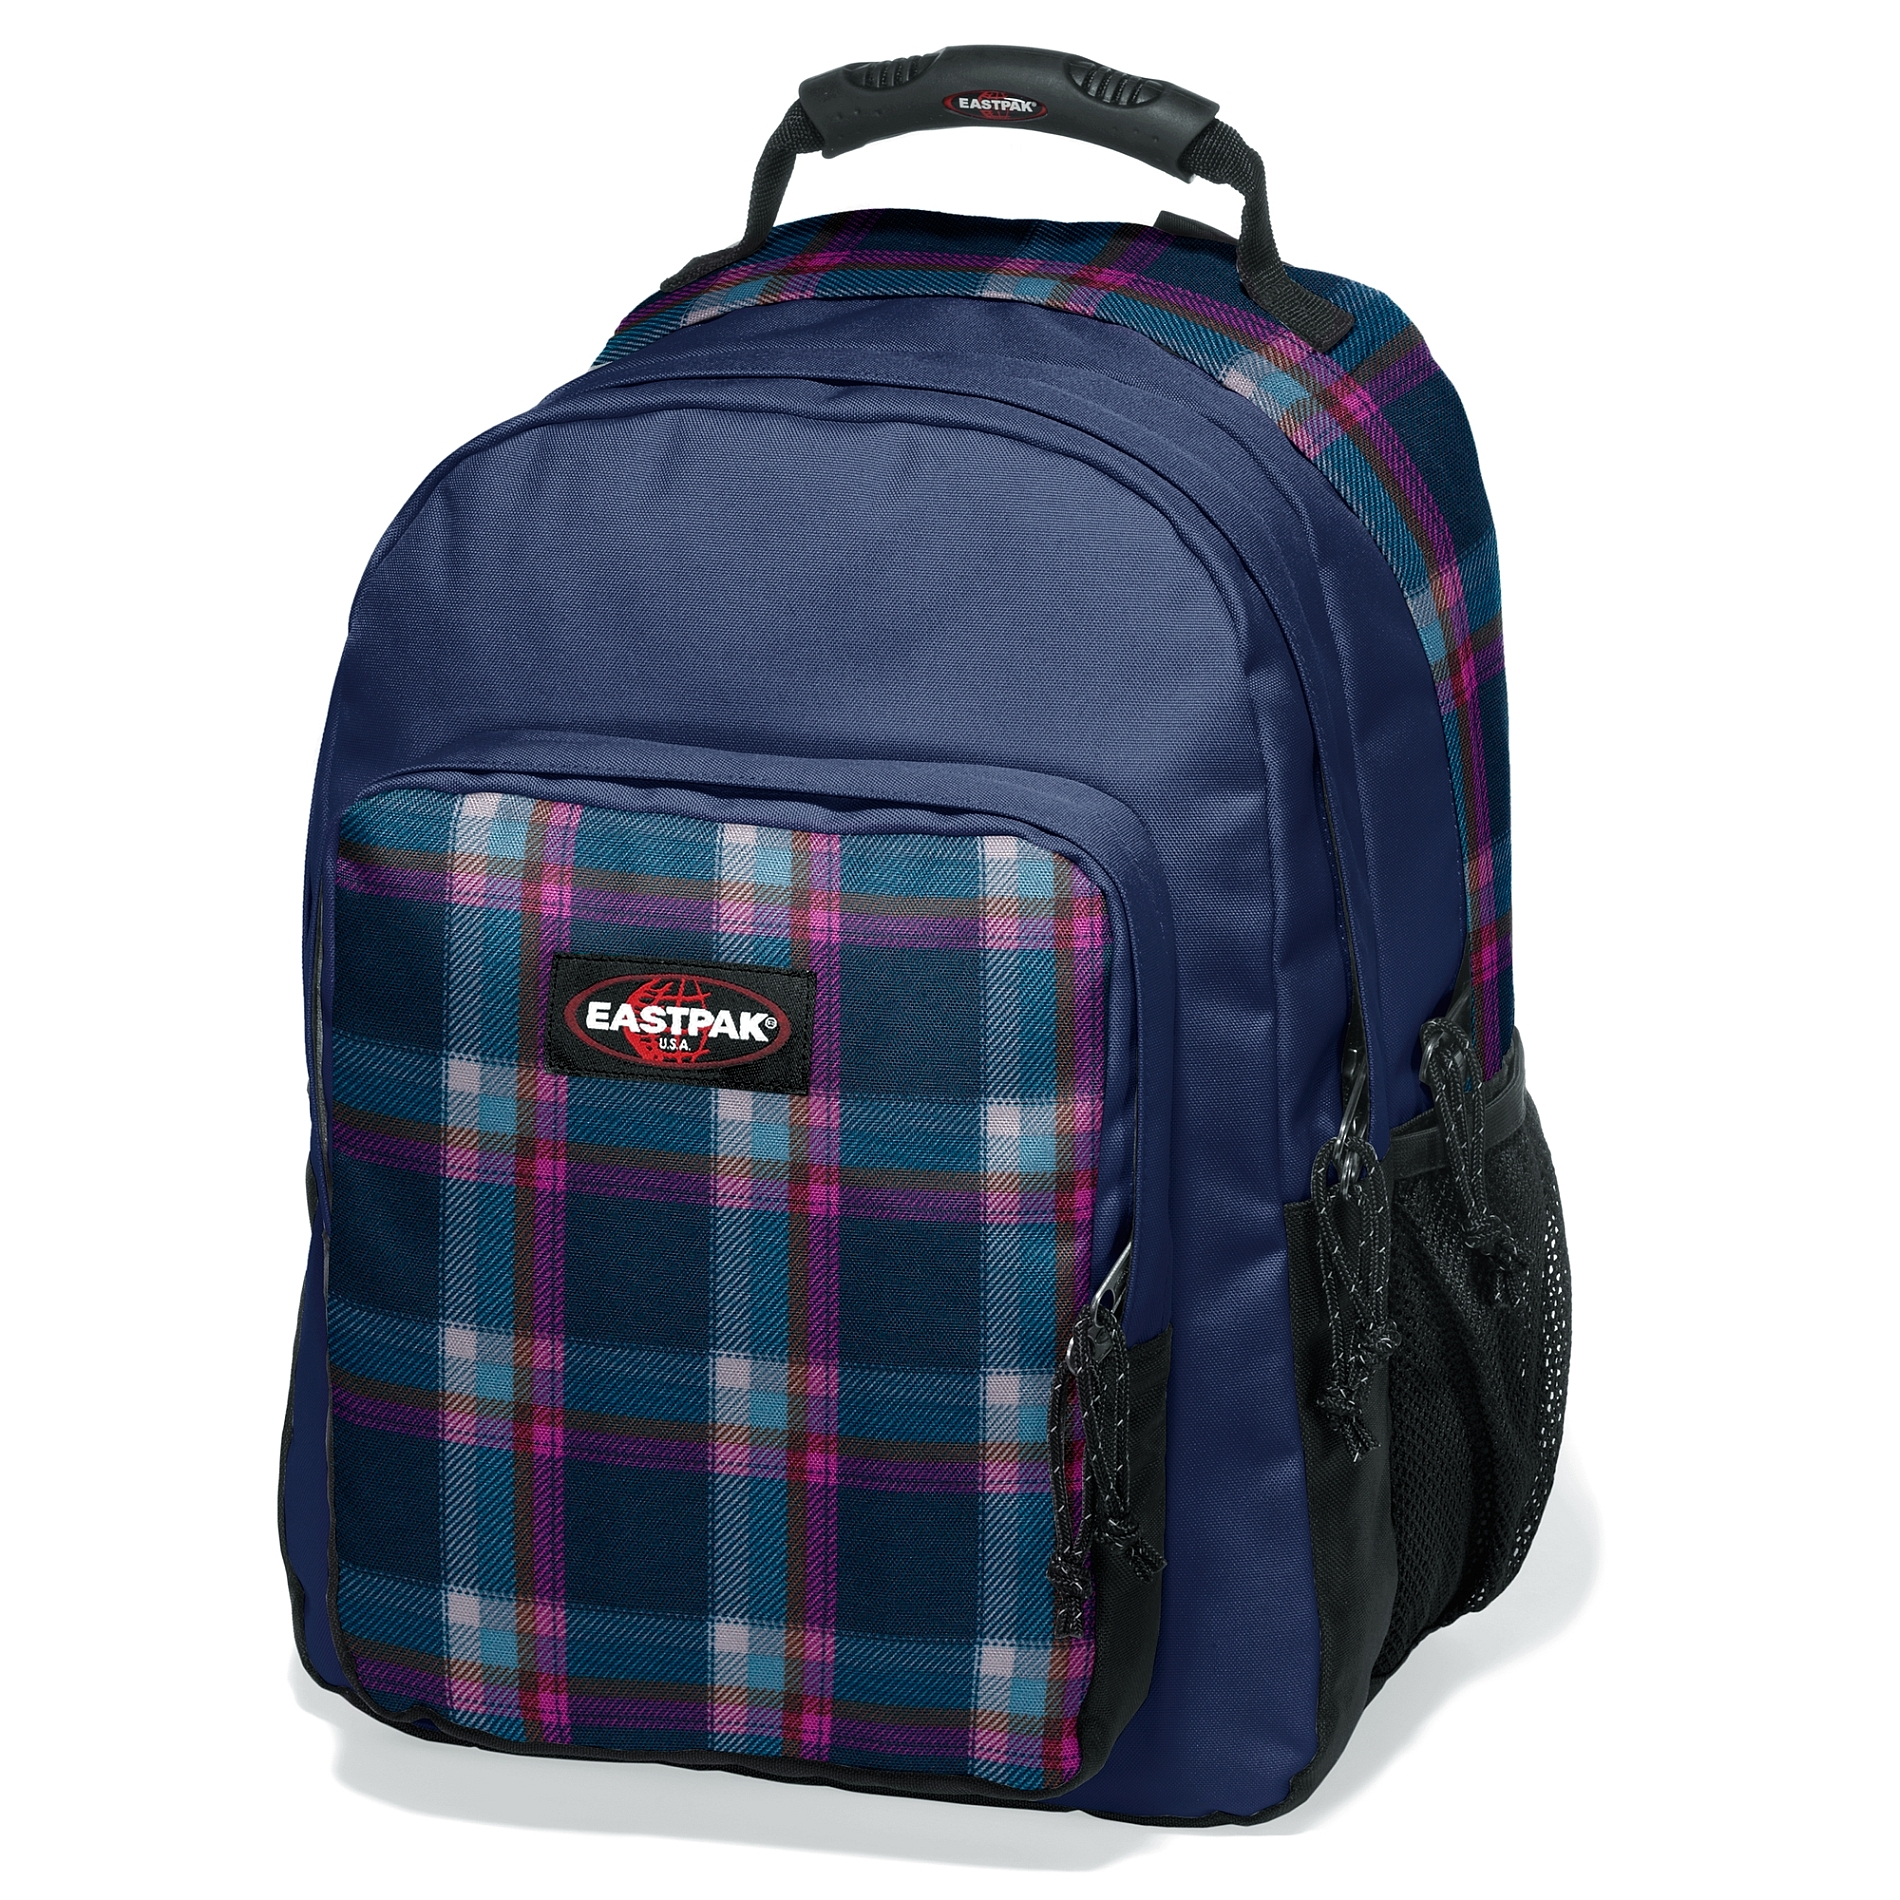 Eastpak Egghead Checked Pink Rucsac Laptop 15